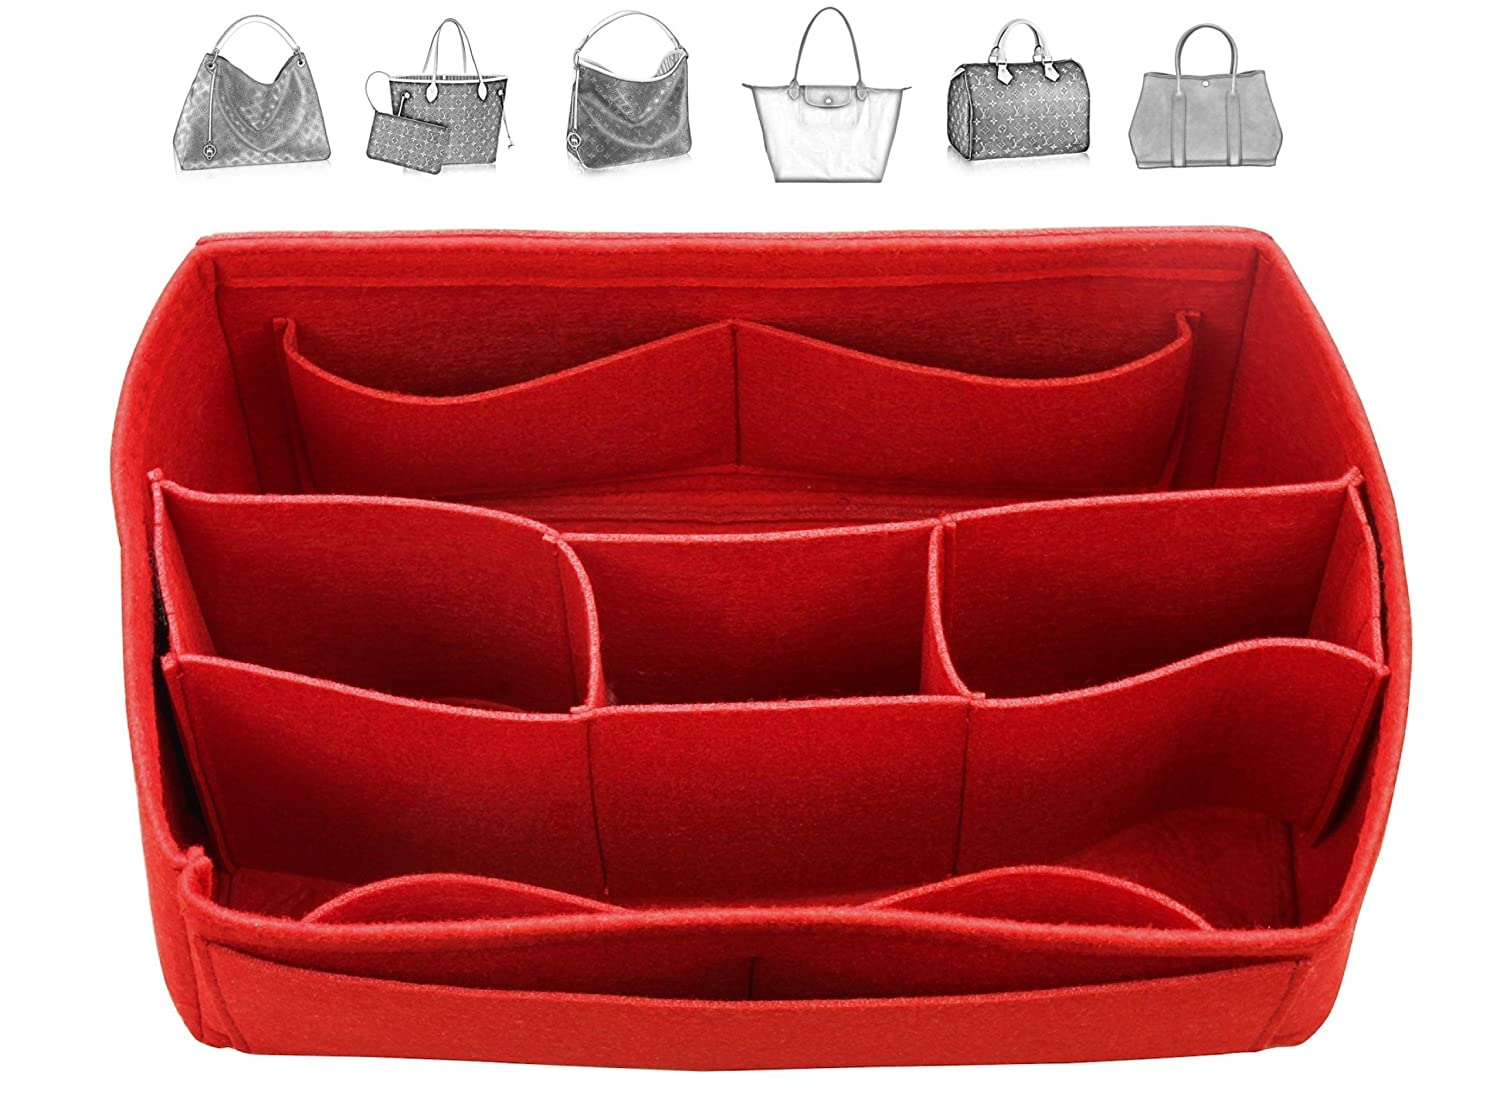 Felt Organizer (with Detachable Middle Compartments), Bag in Bag, Wool Purse Insert, Customized Tote Organize, Cosmetic Makeup Diaper Handbag